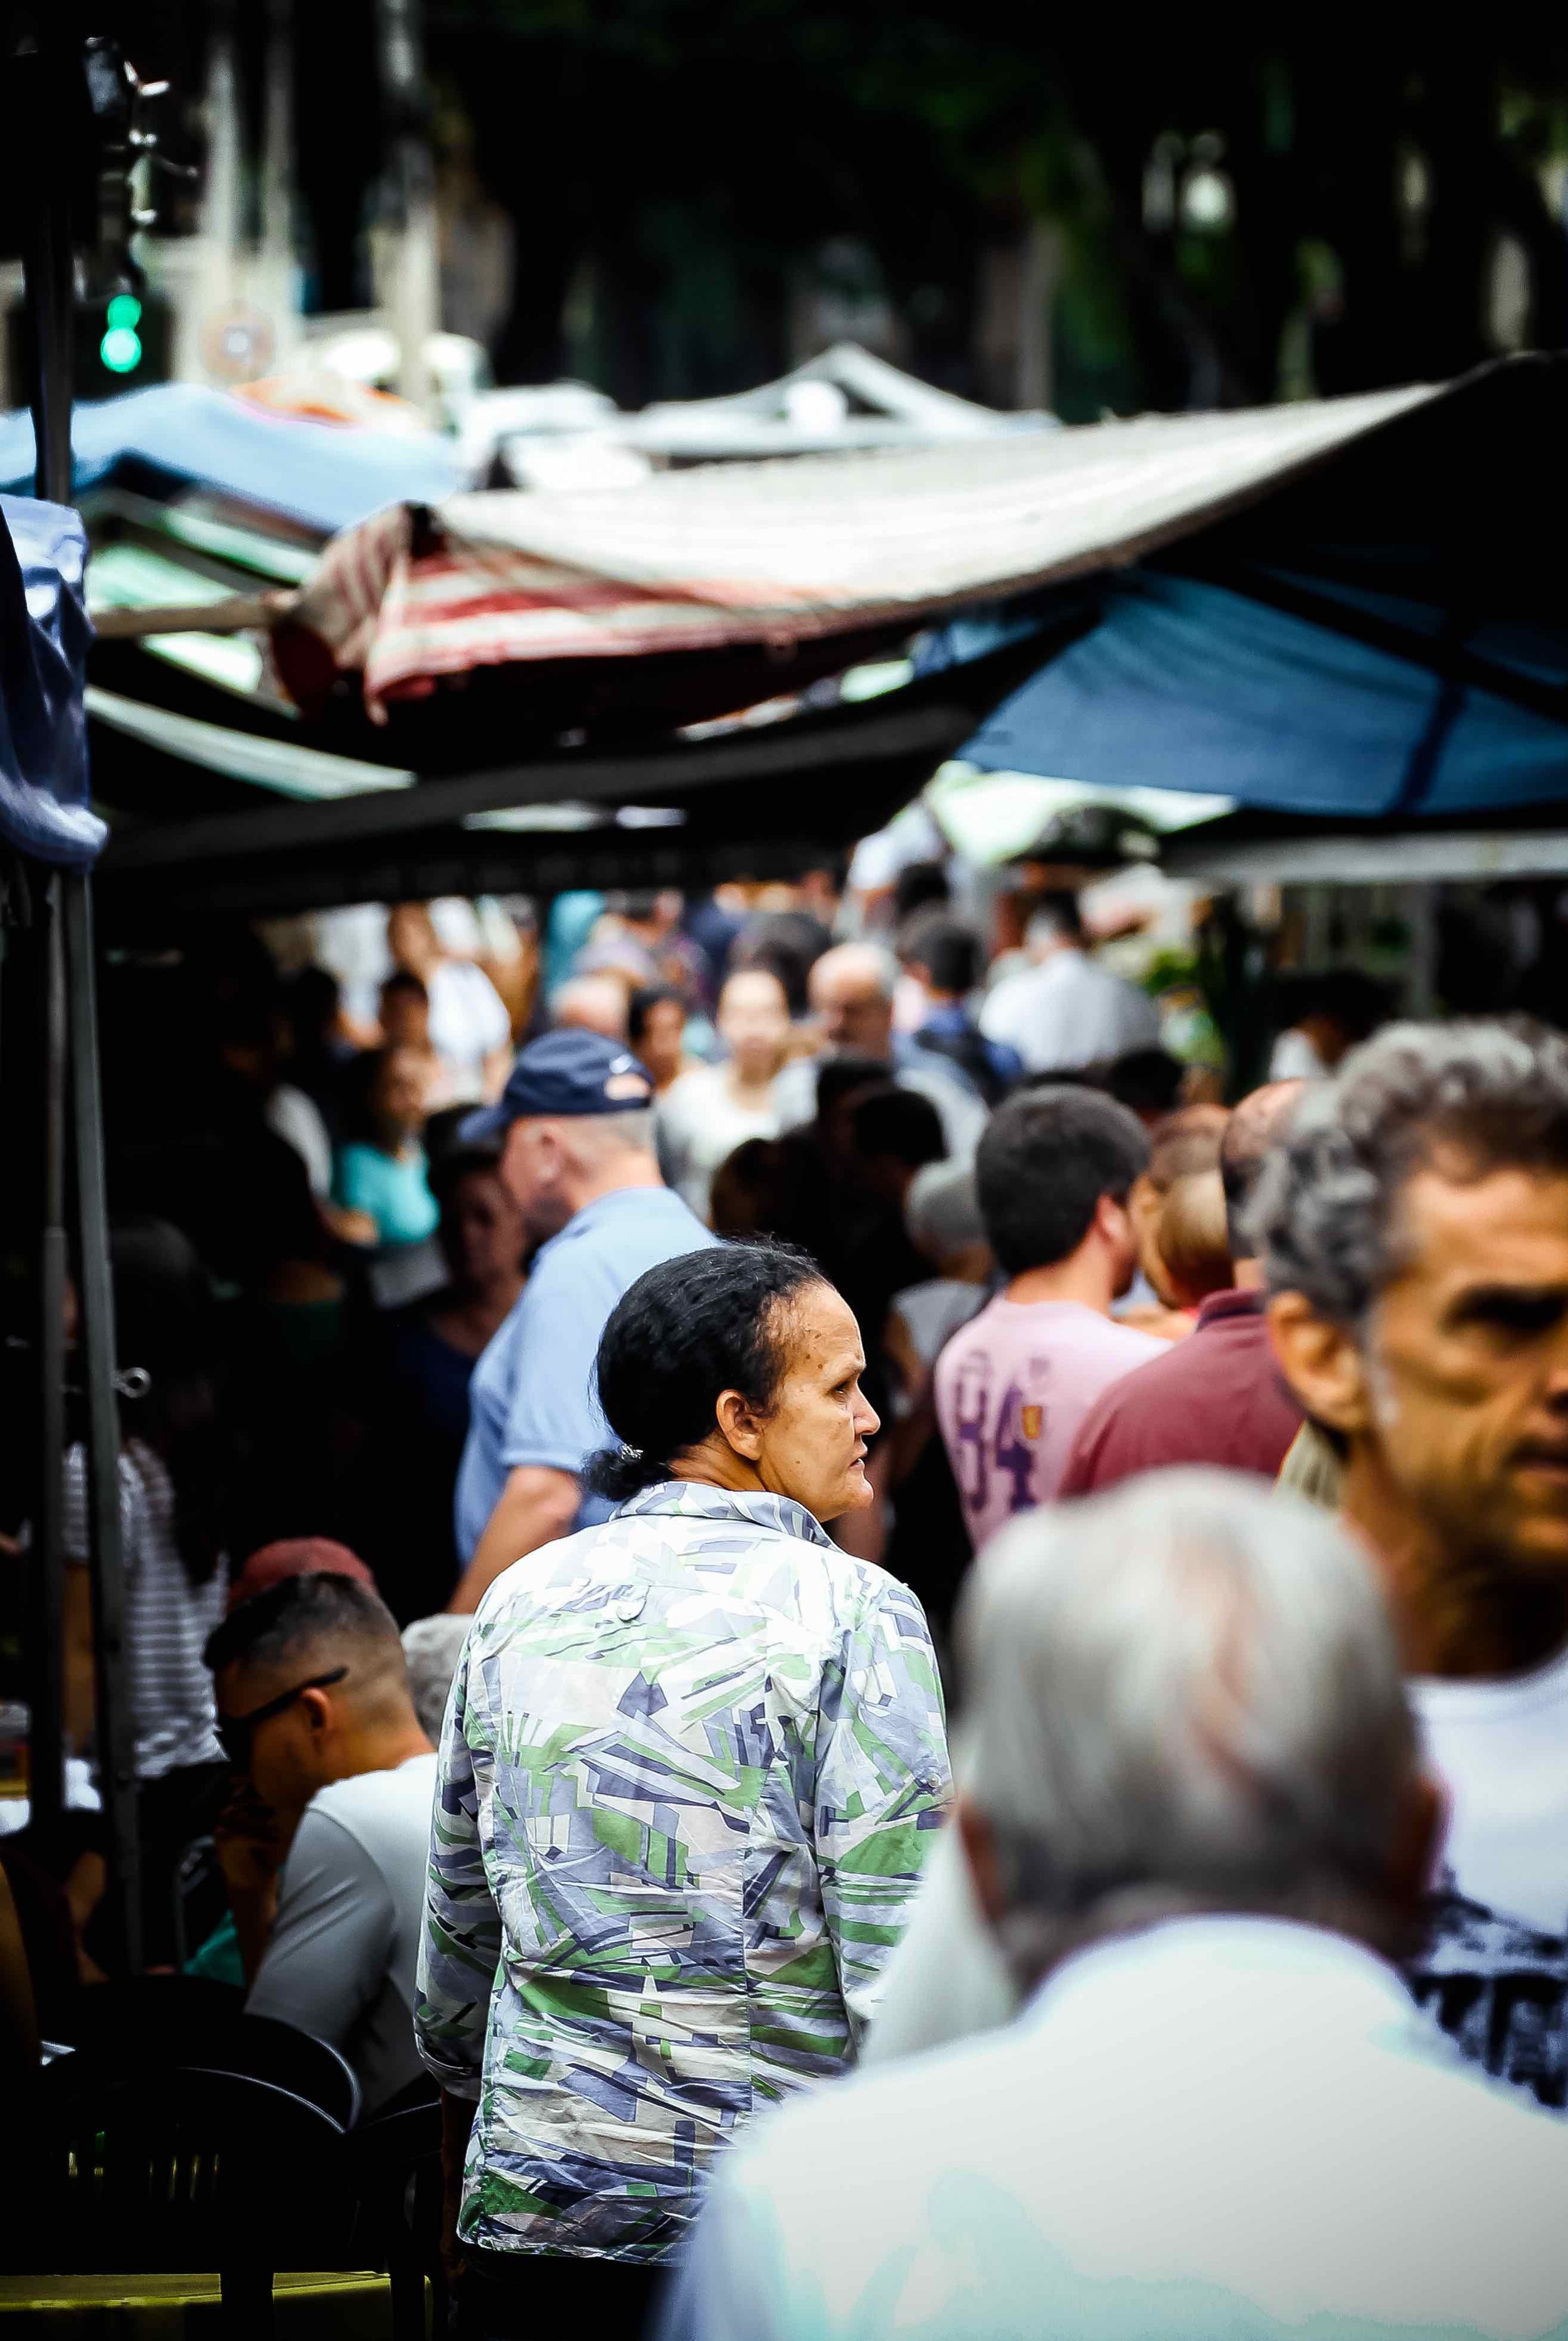 Woman looks on at the local  Feira (Farmer's Market).